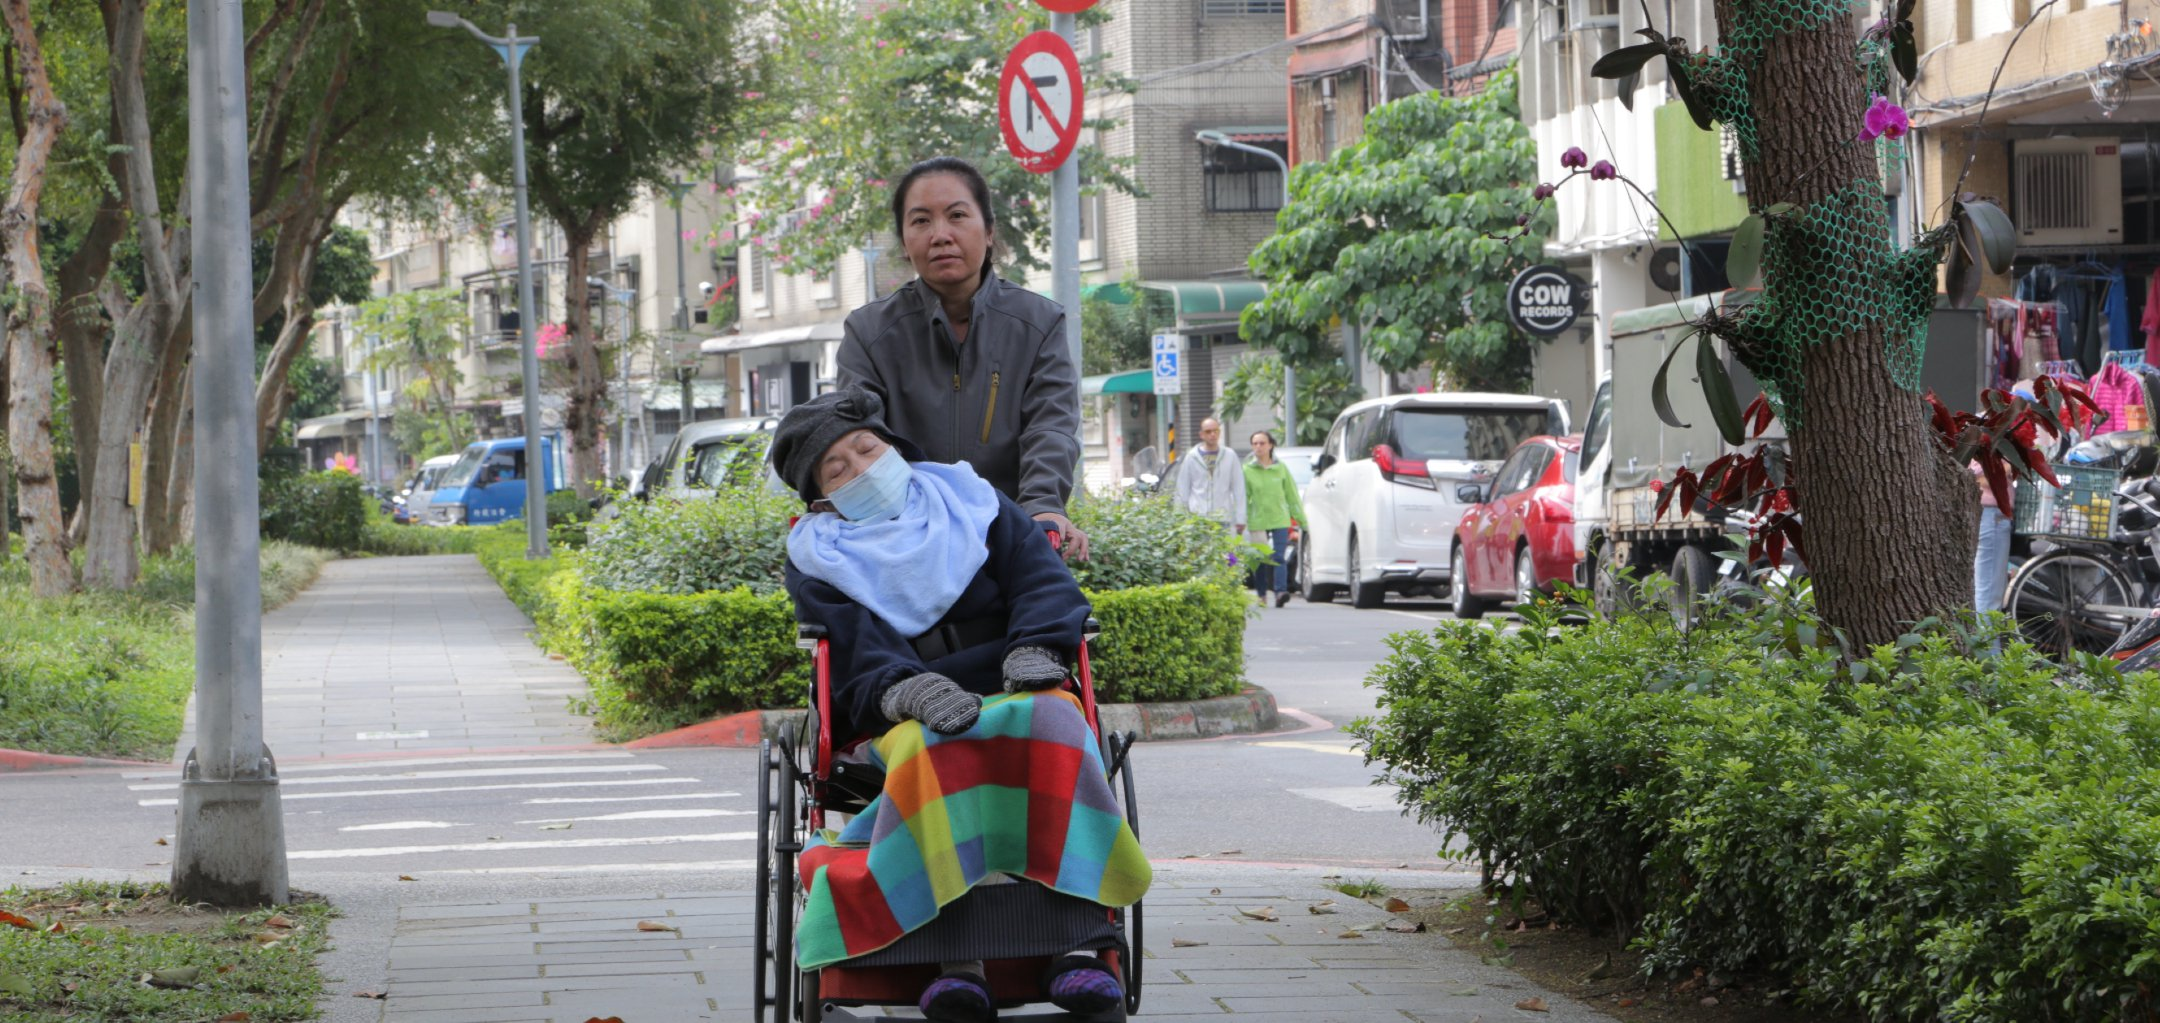 An Indonesian woman pushes an elderly person in a wheelchair in a still from 'Help is on the Way' - IFF 2021